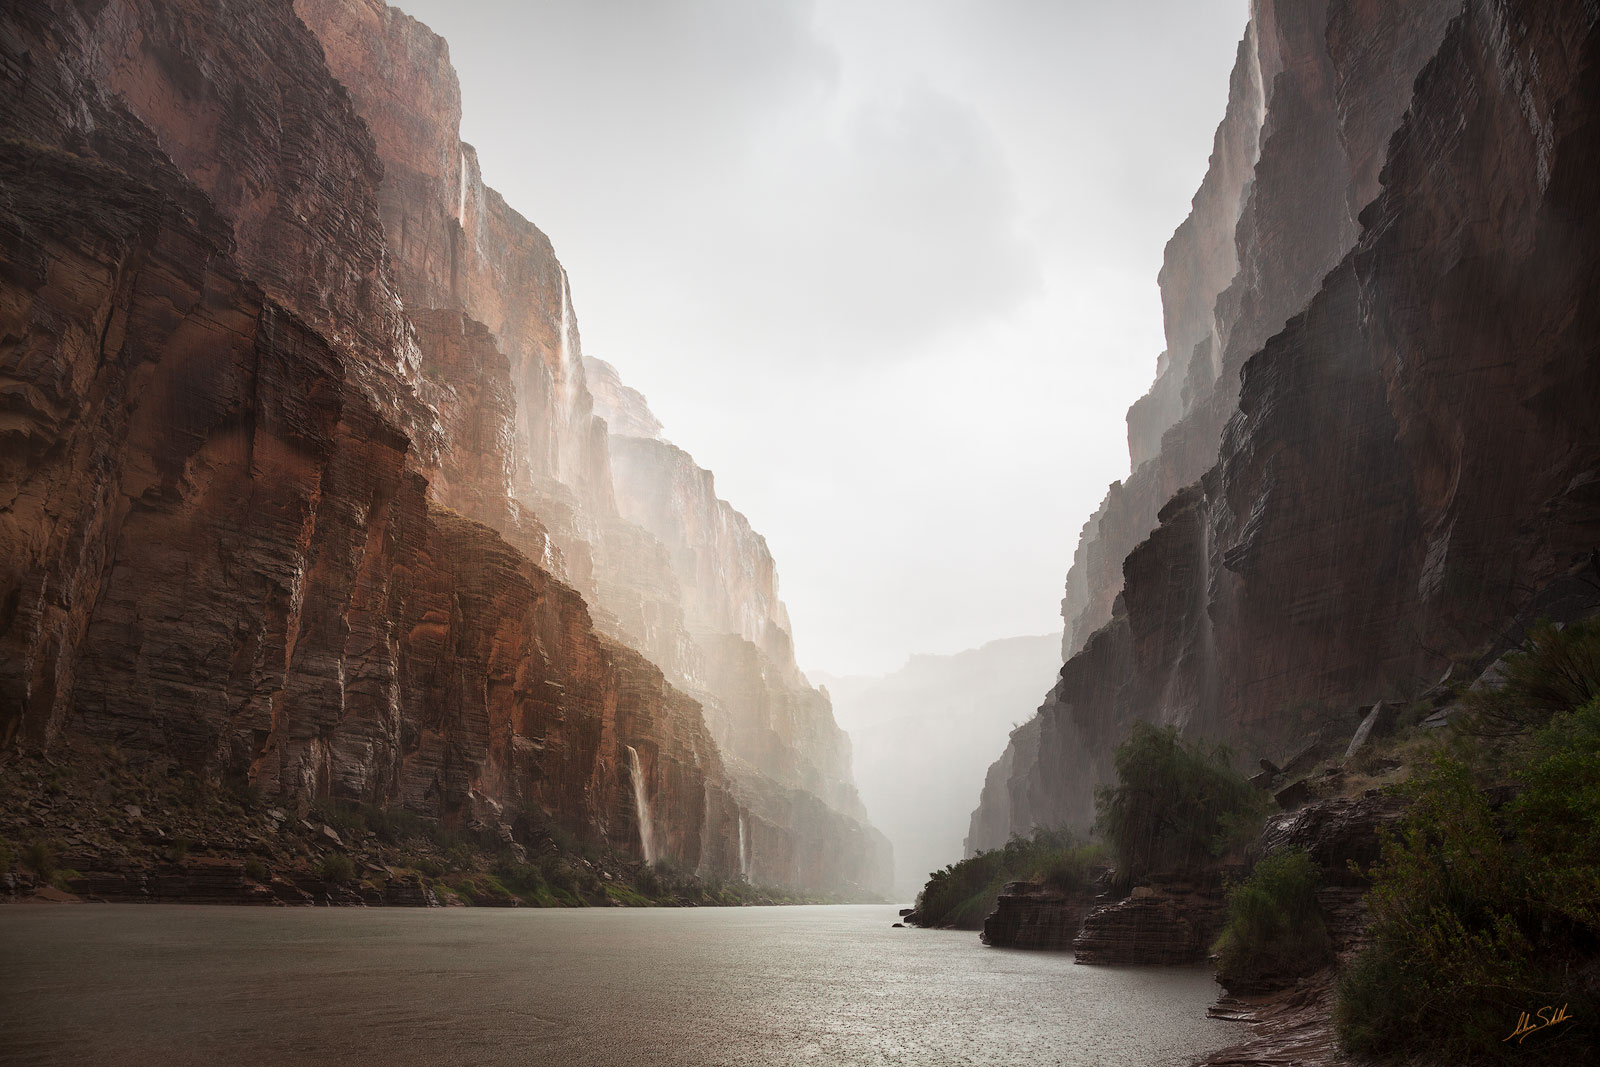 A sudden downpour from a monsoon thunderstorm has caused numerous waterfalls to cascade into Grand Canyon. Near river mile 164...